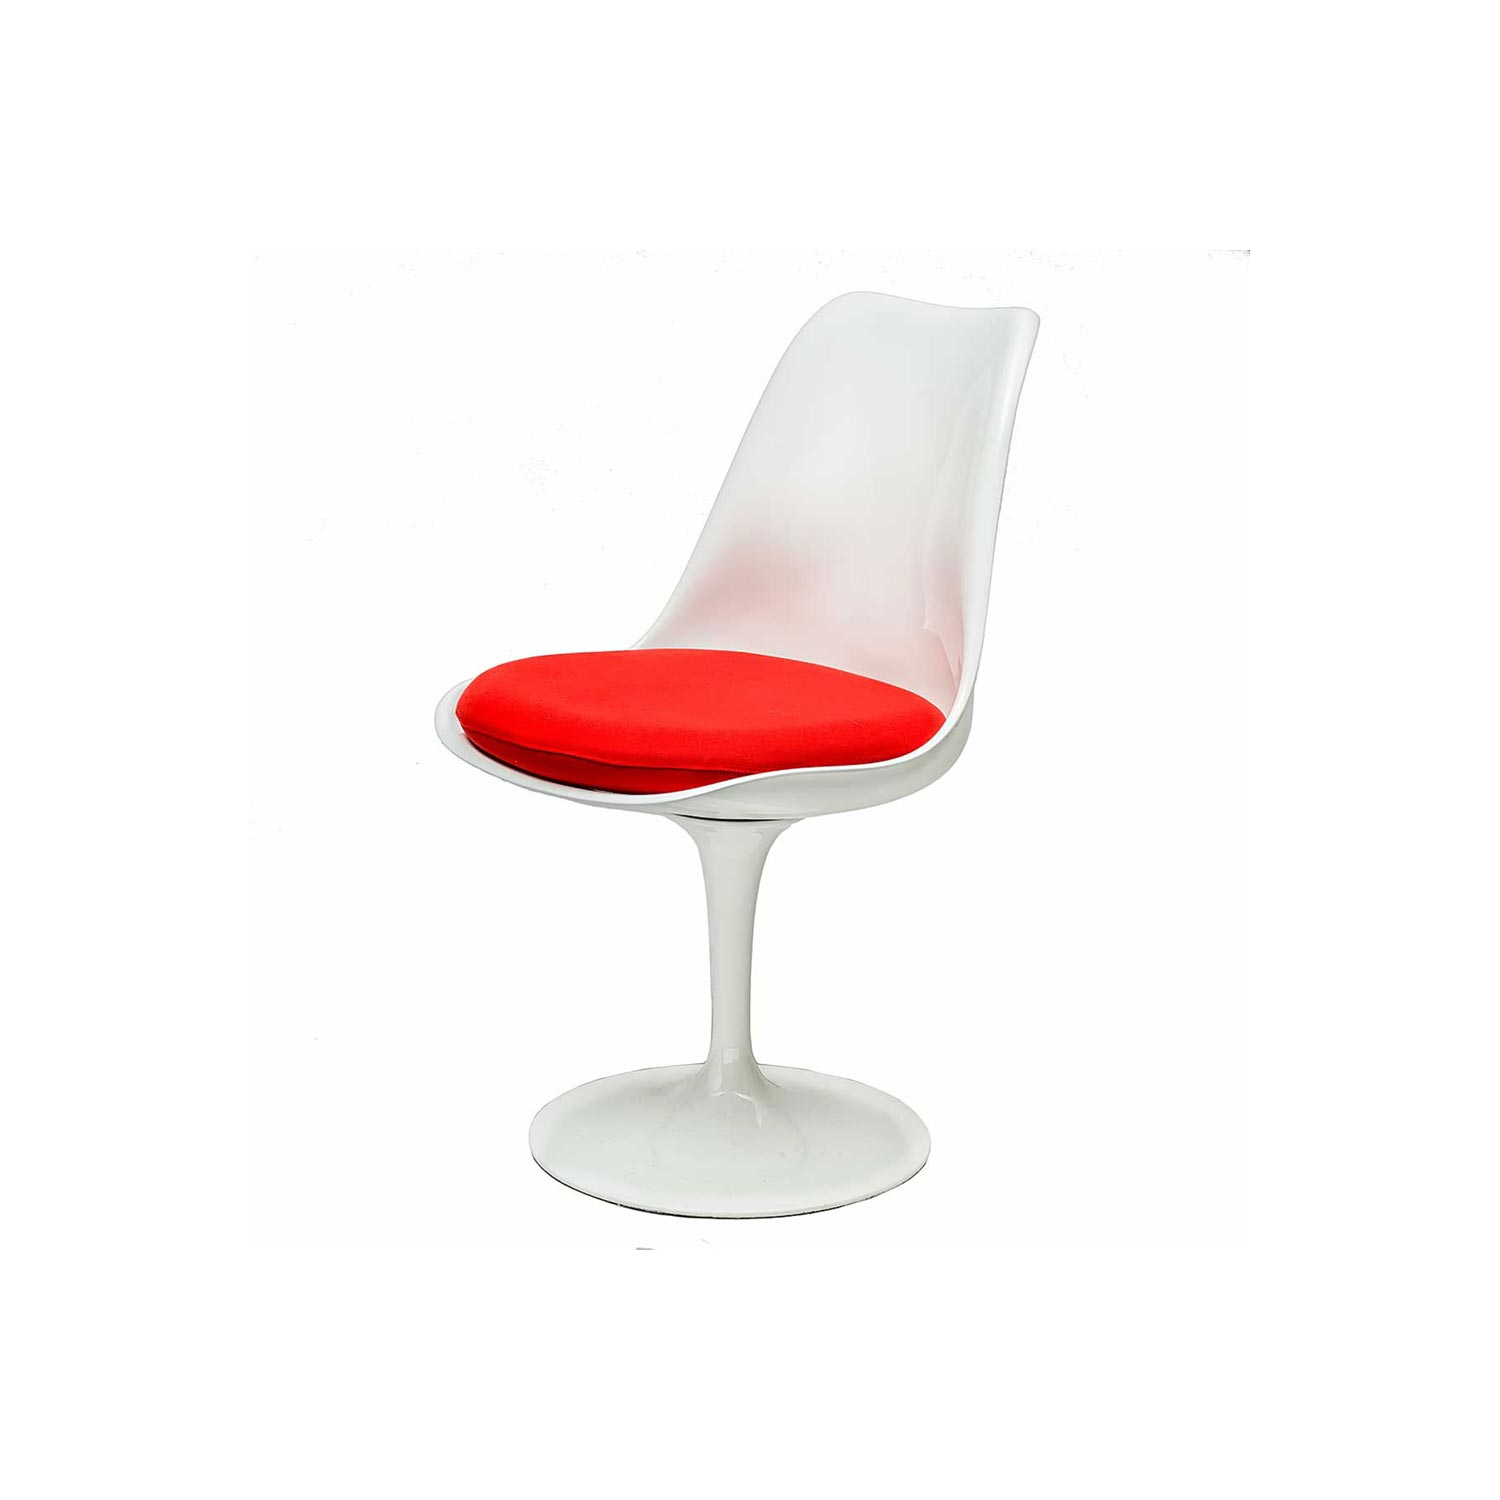 Uncategorized Eero Saarinen Tulip Chair saarinen tulip chair another steelform design classic eero chair